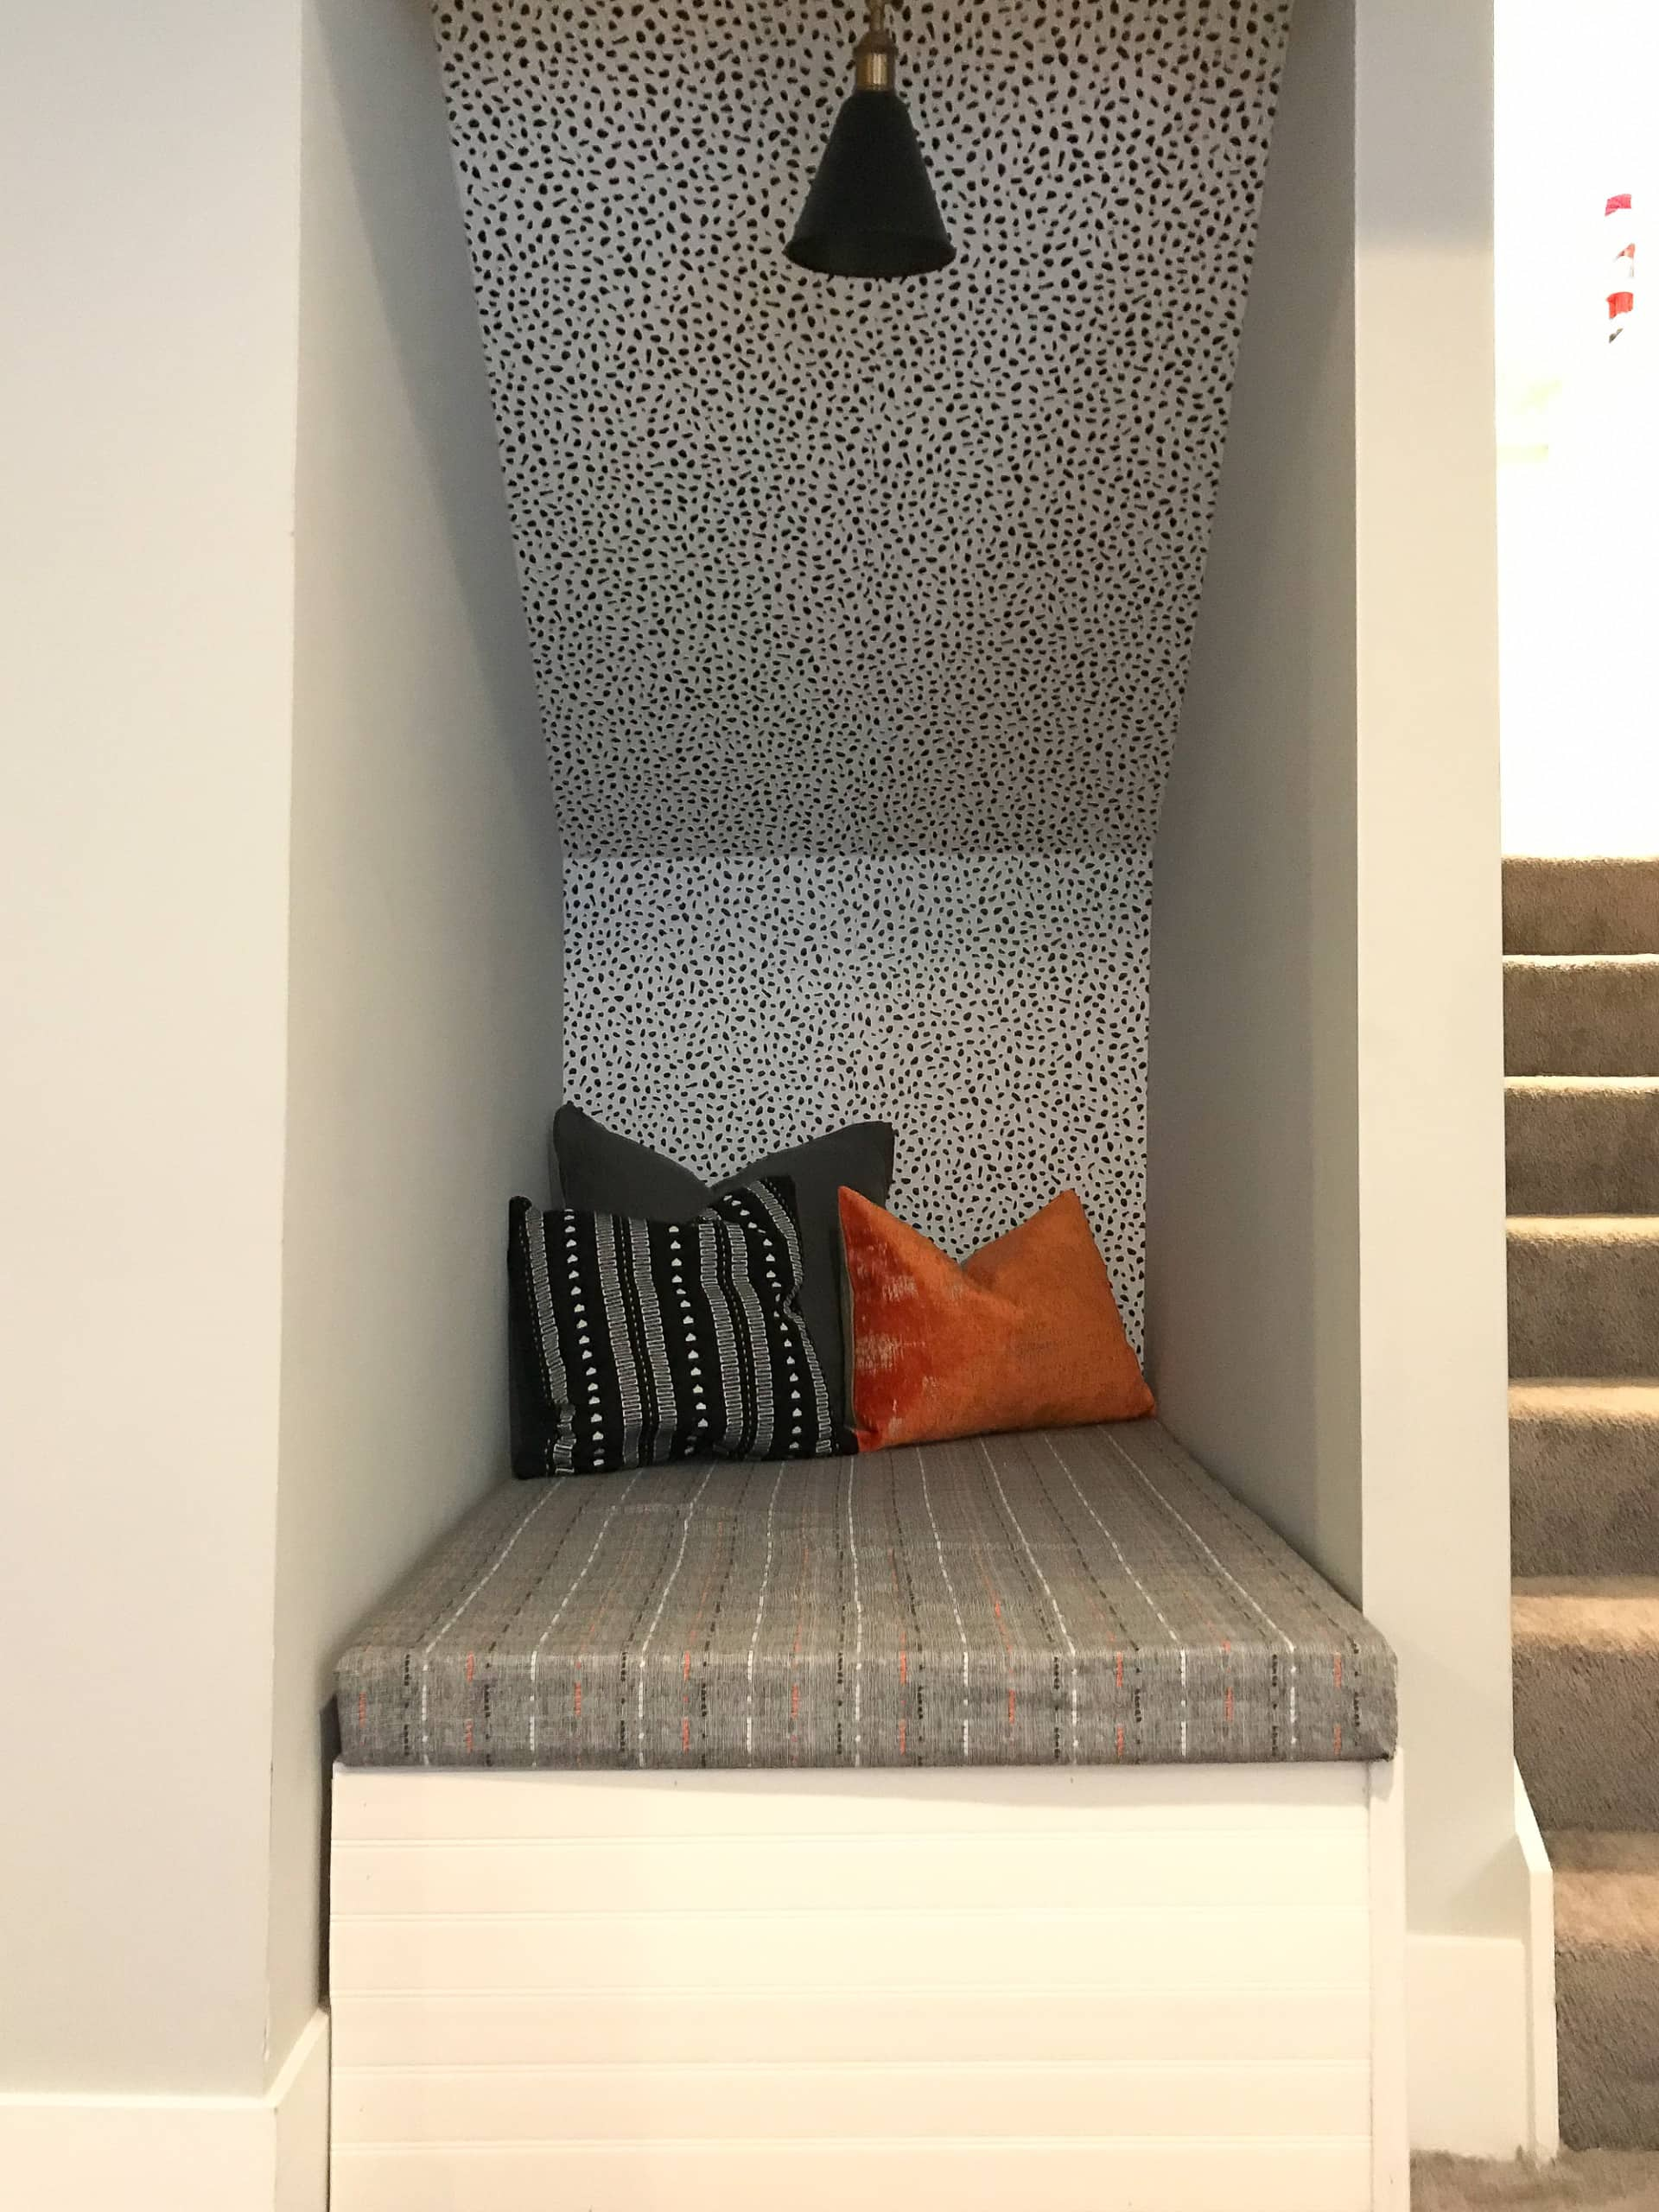 Room refresh - reading nook under the stairs